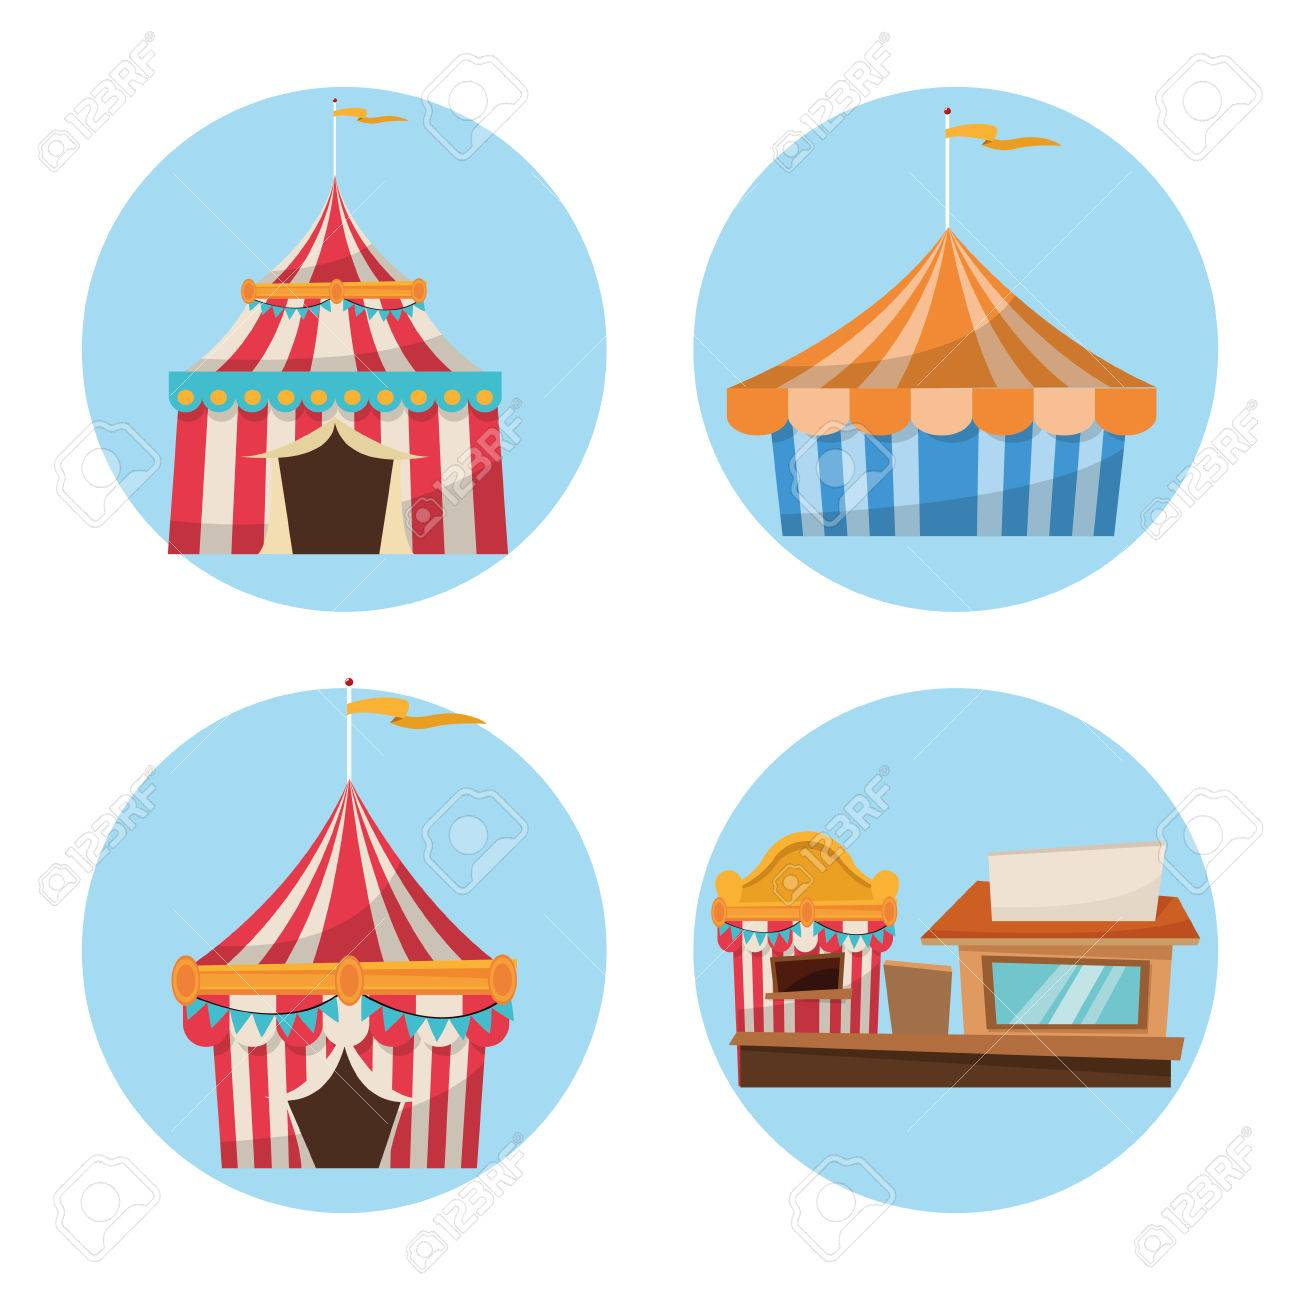 Striped tents with flags and stand. Carnival festival fair circus and celebration theme. Colorful  sc 1 st  123RF Stock Photos & Striped Tents With Flags And Stand. Carnival Festival Fair Circus ...